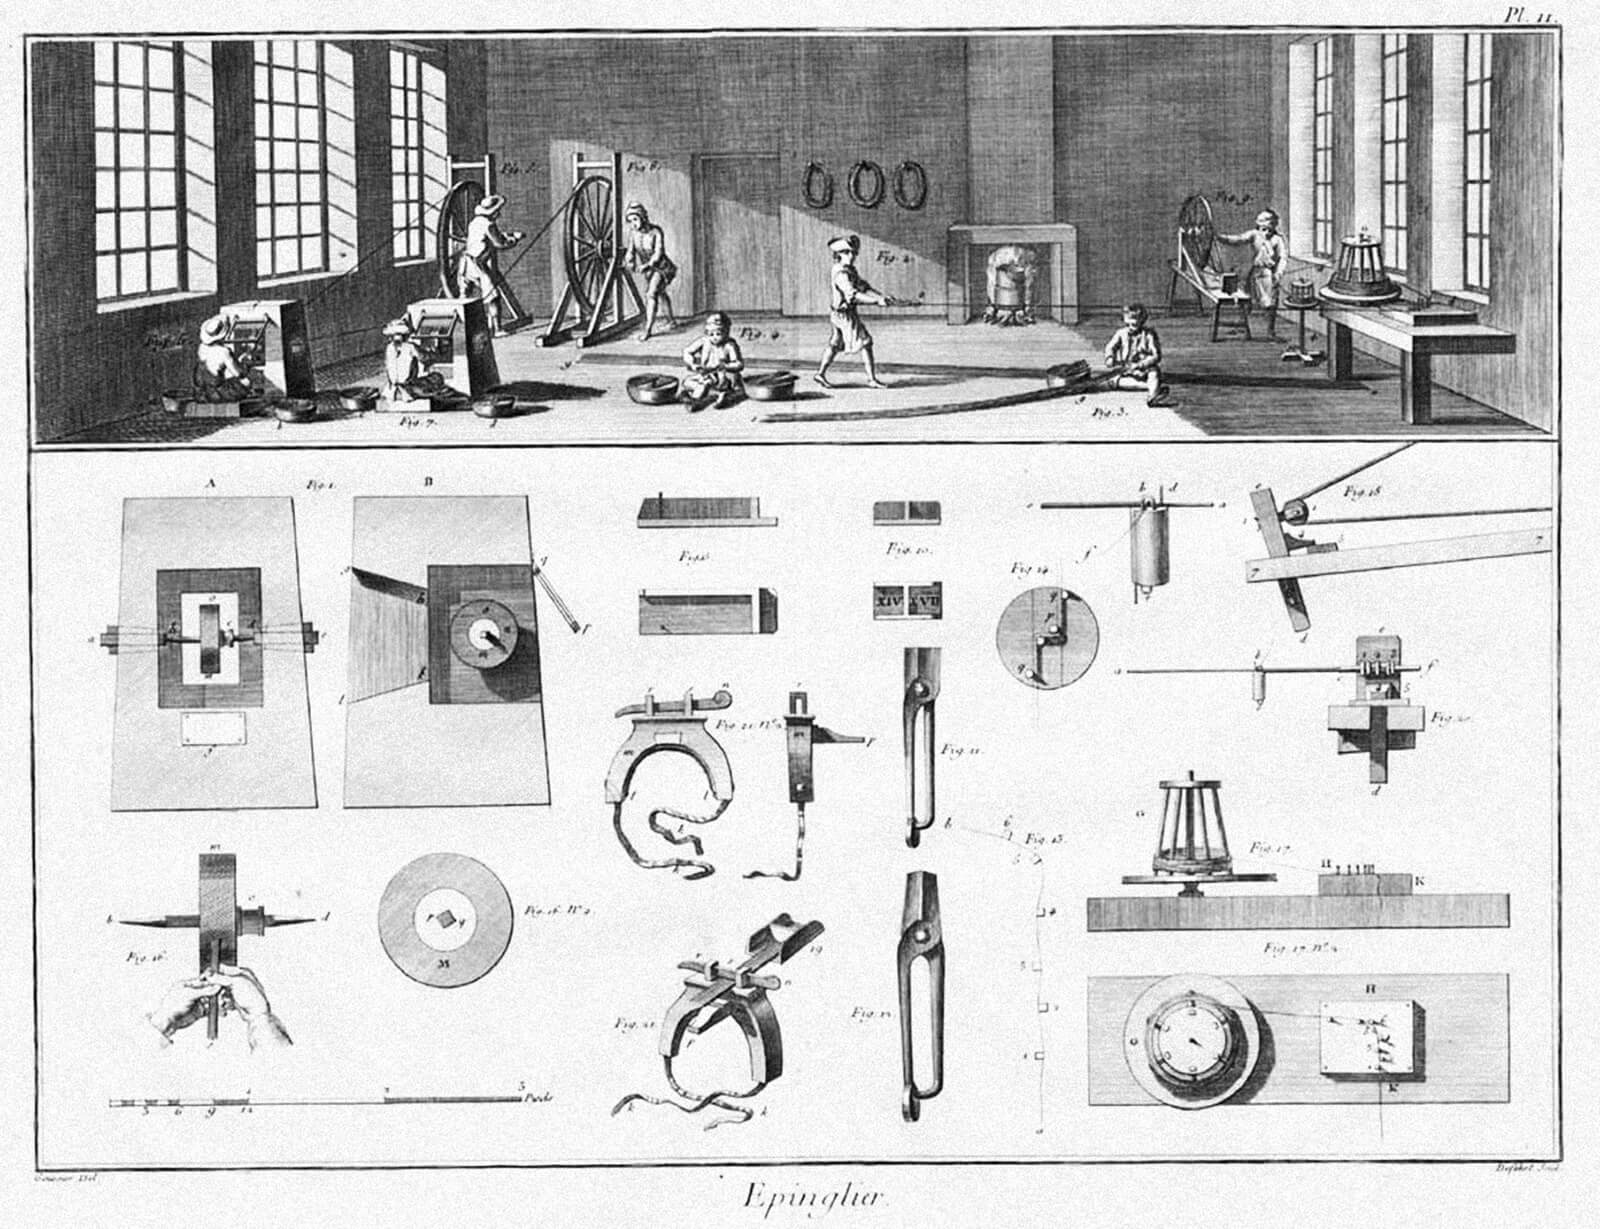 Pinmaking, from Diderot's Encyclopédie, 1762